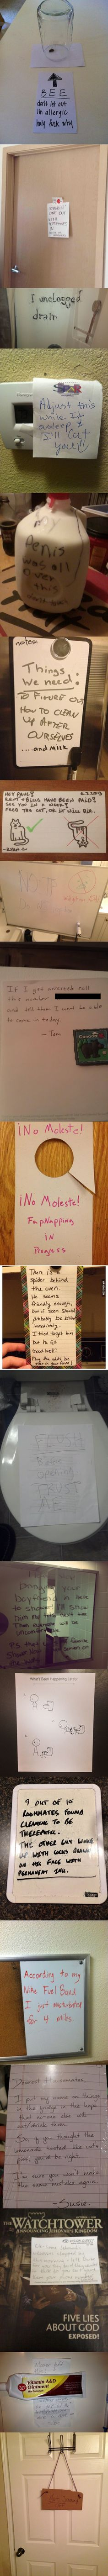 Notes From Roommates